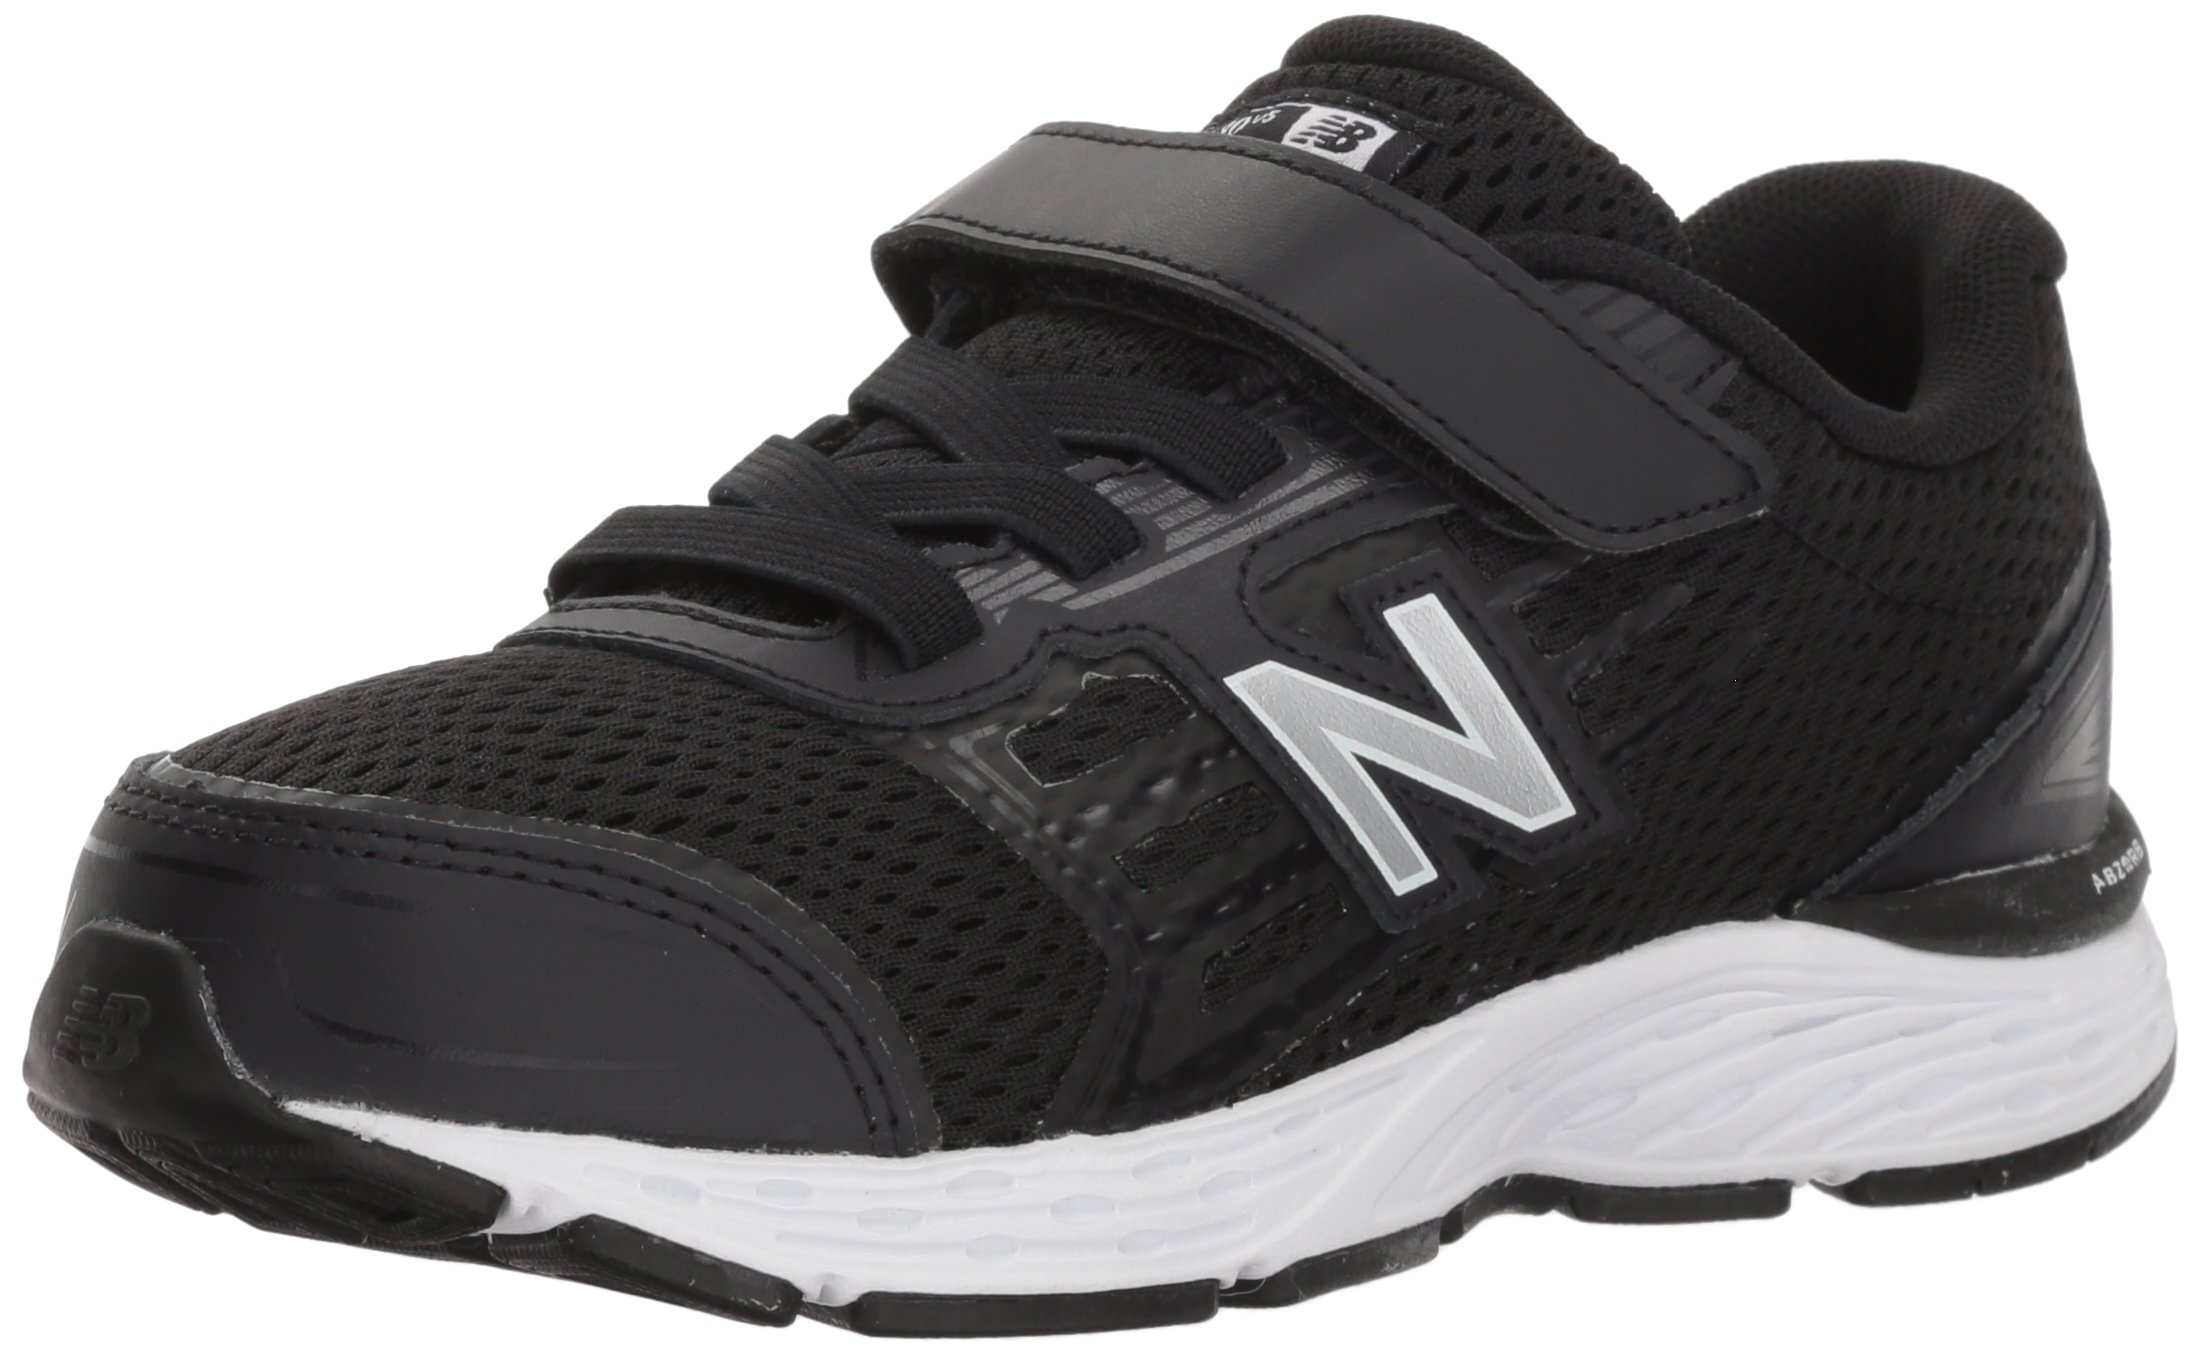 New Balance Boys' 680v5 Hook and Loop Running Shoe, Black/White, 9 M US Toddler by New Balance (Image #1)